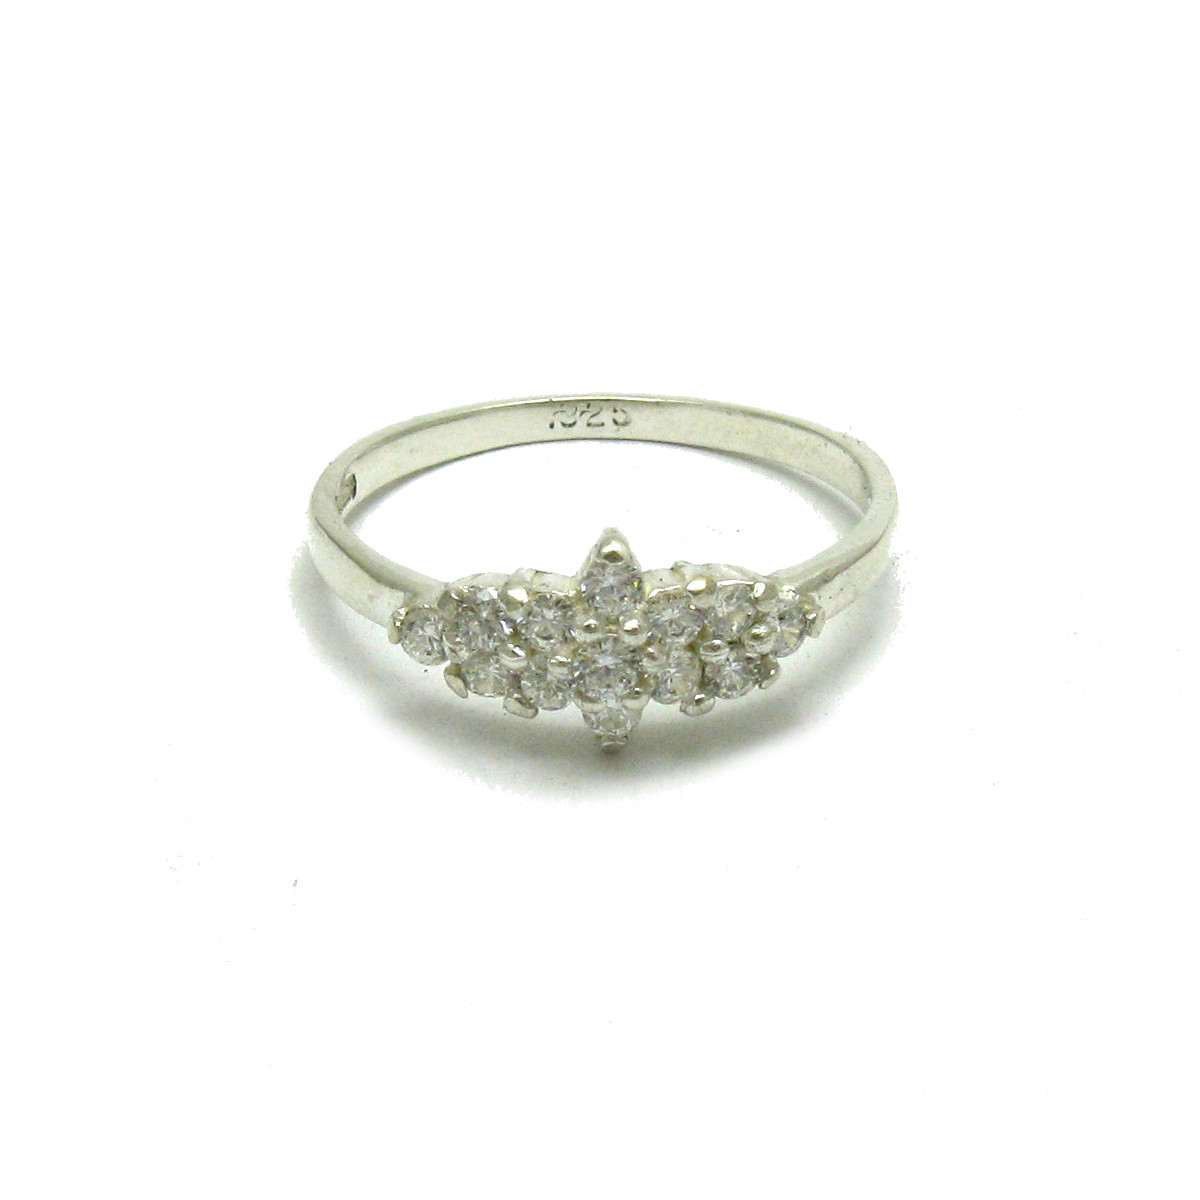 Silver ring - R001657